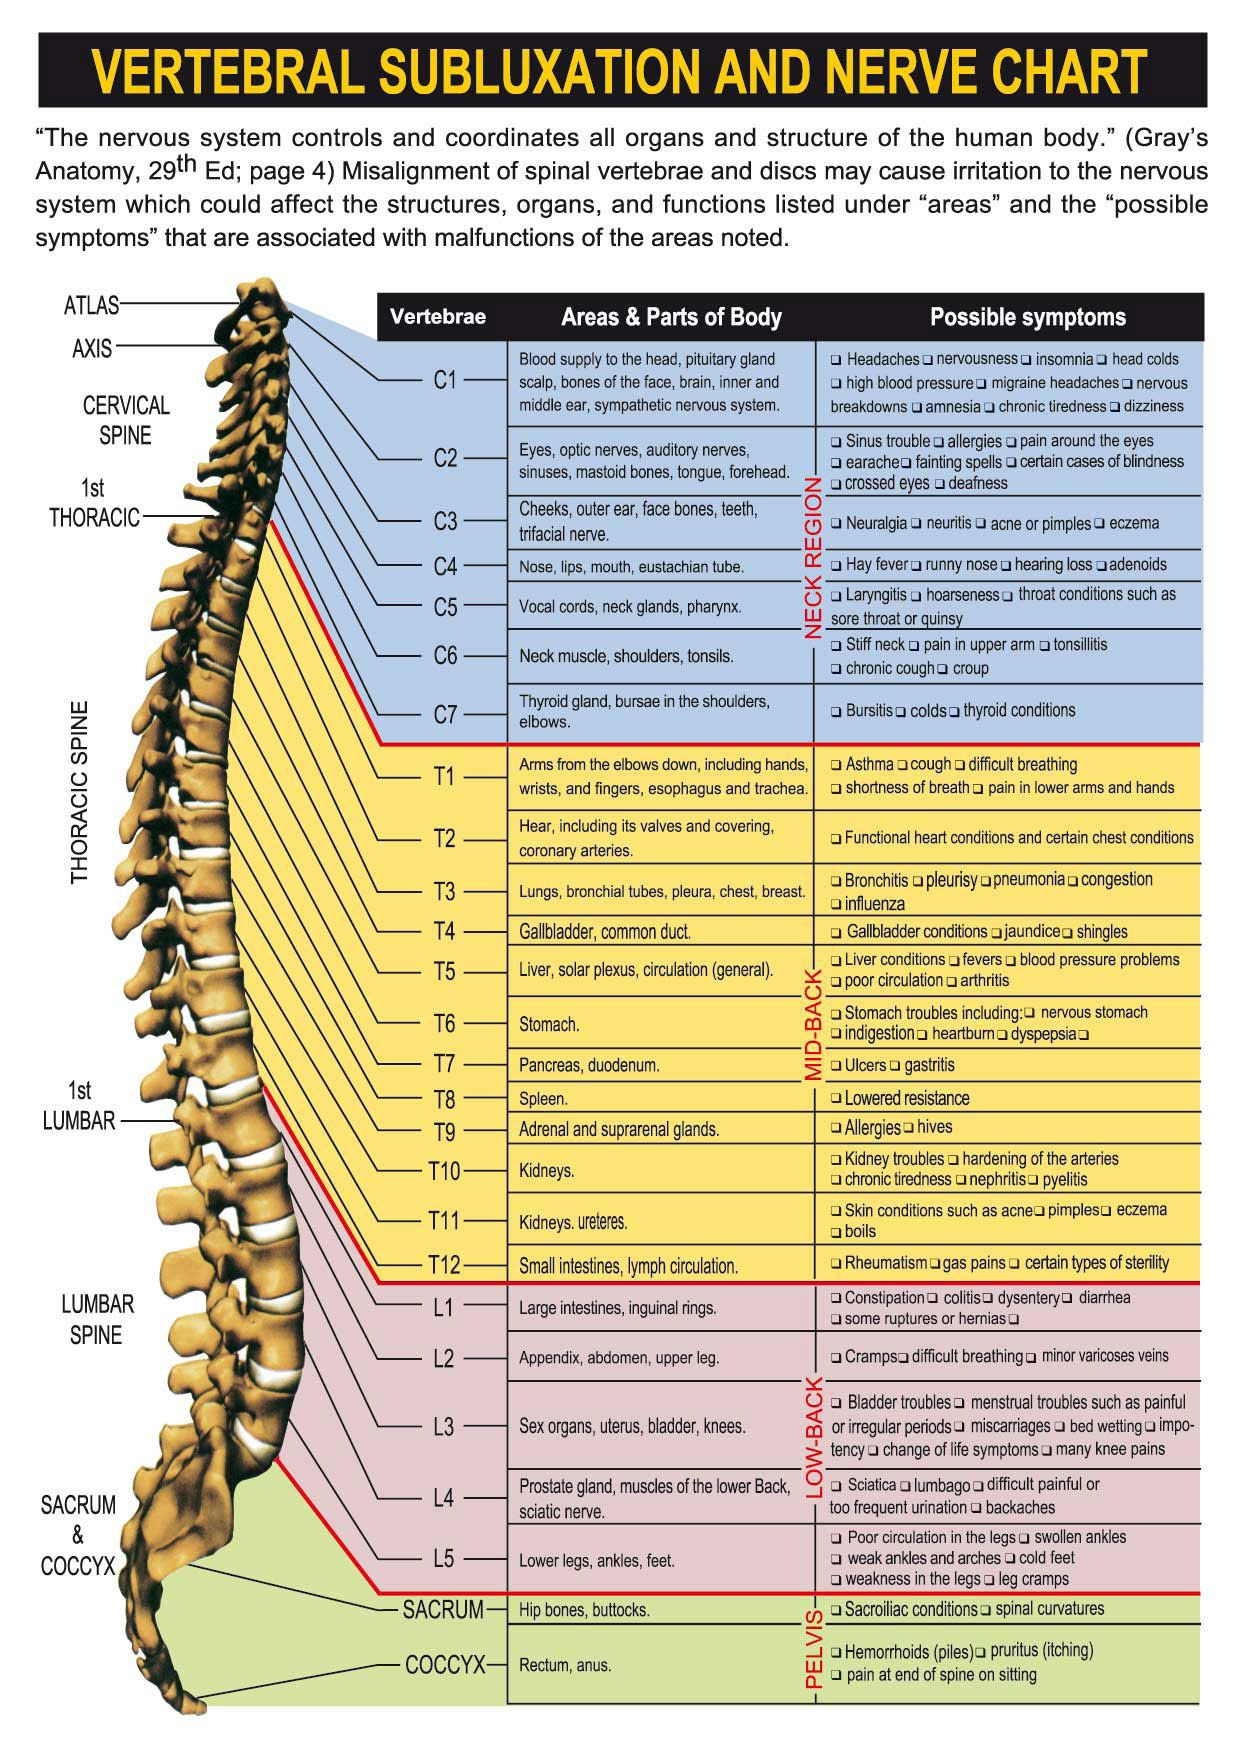 lumbar spinal nerves diagram wiring single phase motor nerve chart with effects of vertebral subluxations